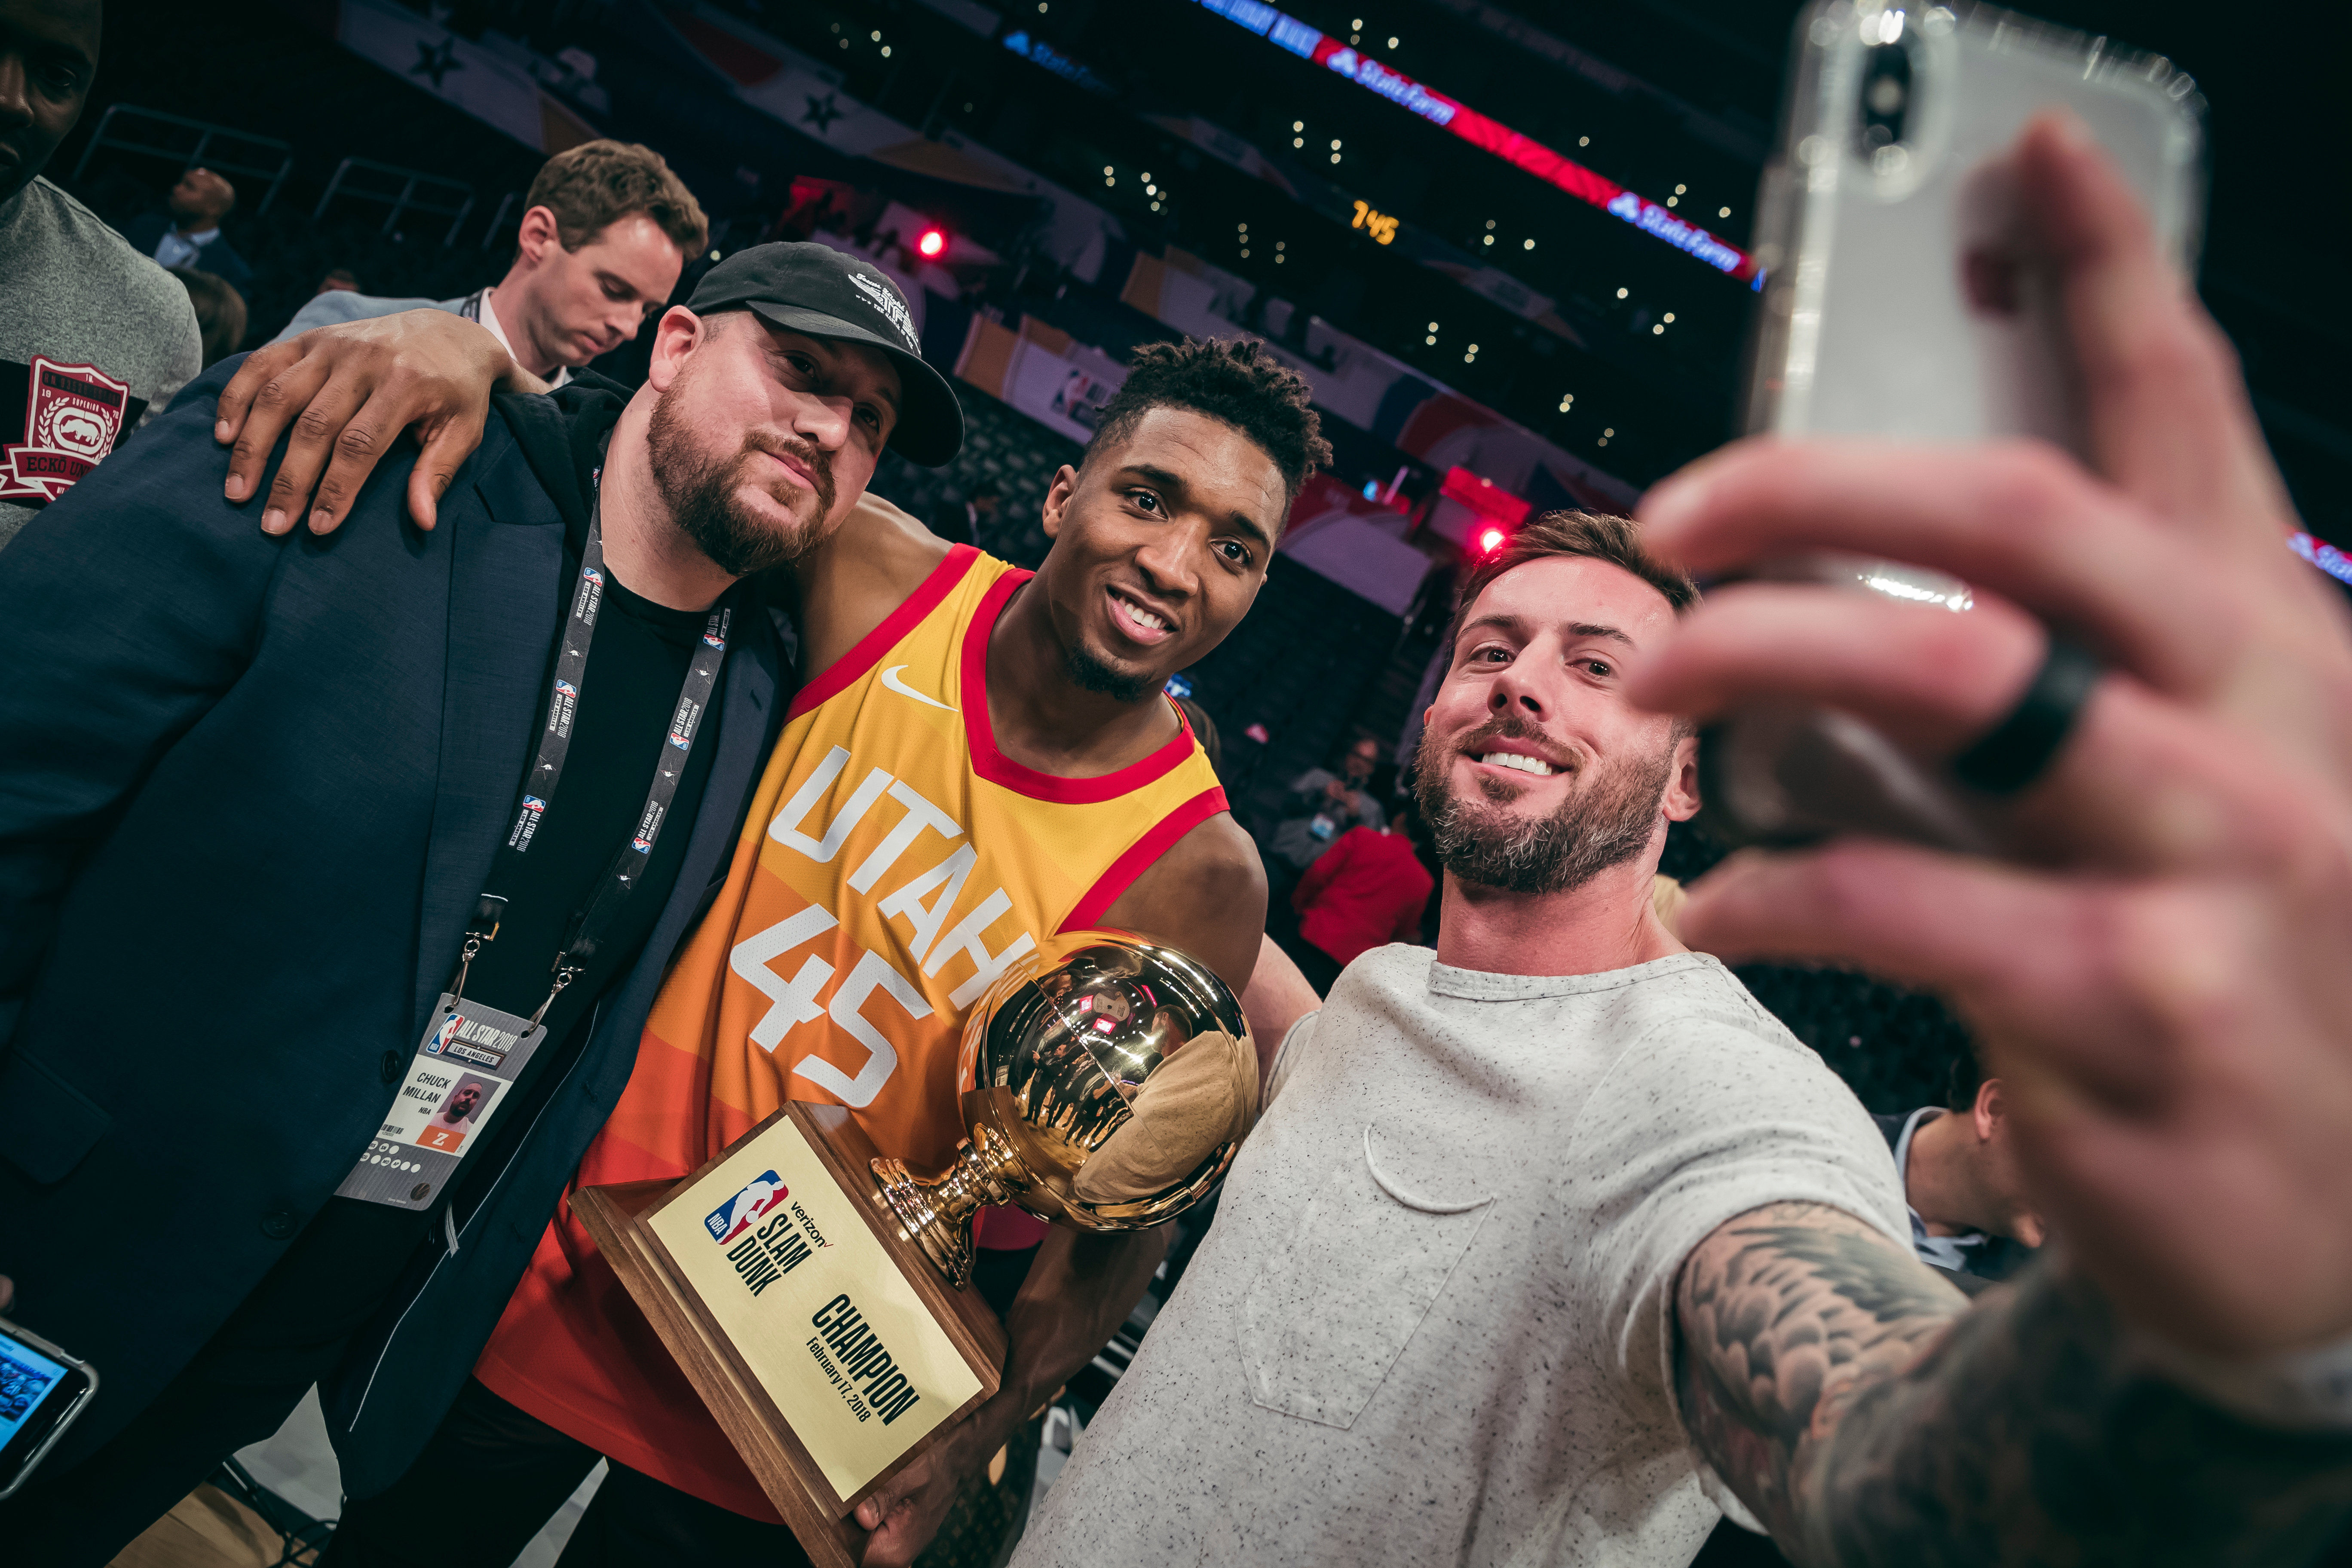 b933175b7 Day two at the 2018 NBA All-Star Weekend in Los Angeles. Donovan Mitchell  (center) is the 2018 NBA All-Star Slam Dunk champion.